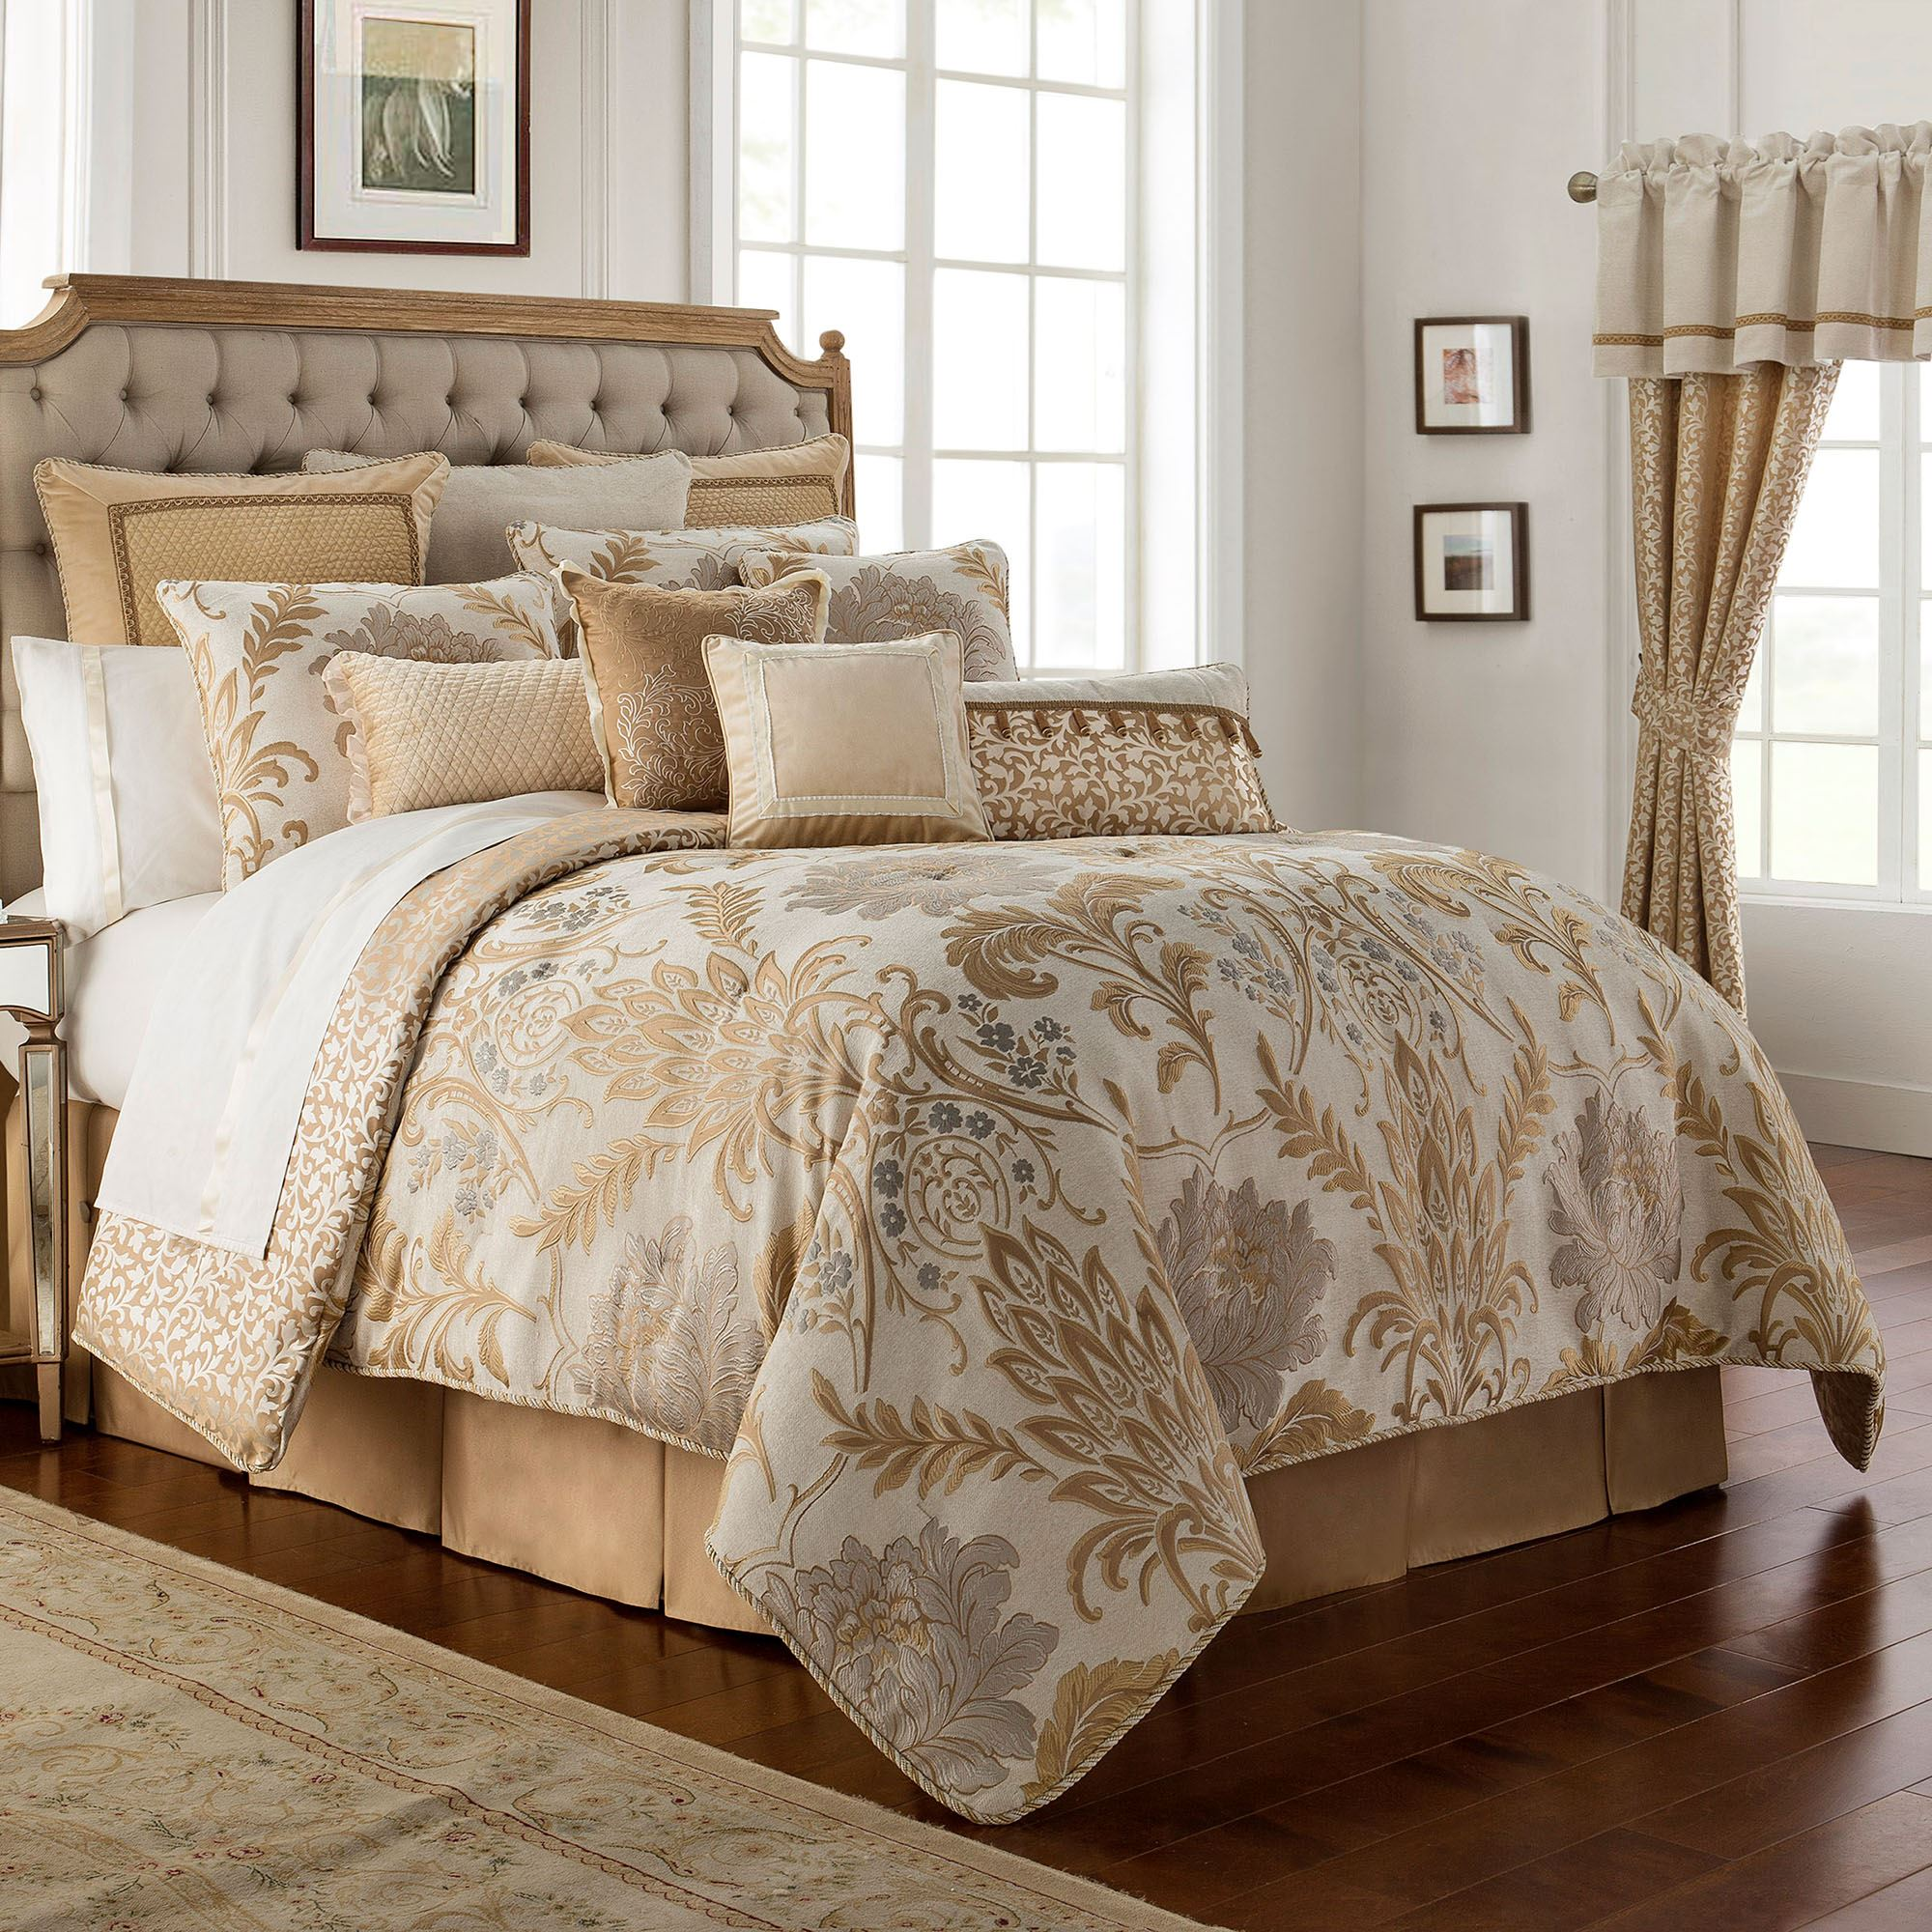 Ansonia Gold Comforter Bedding By Waterford Linens